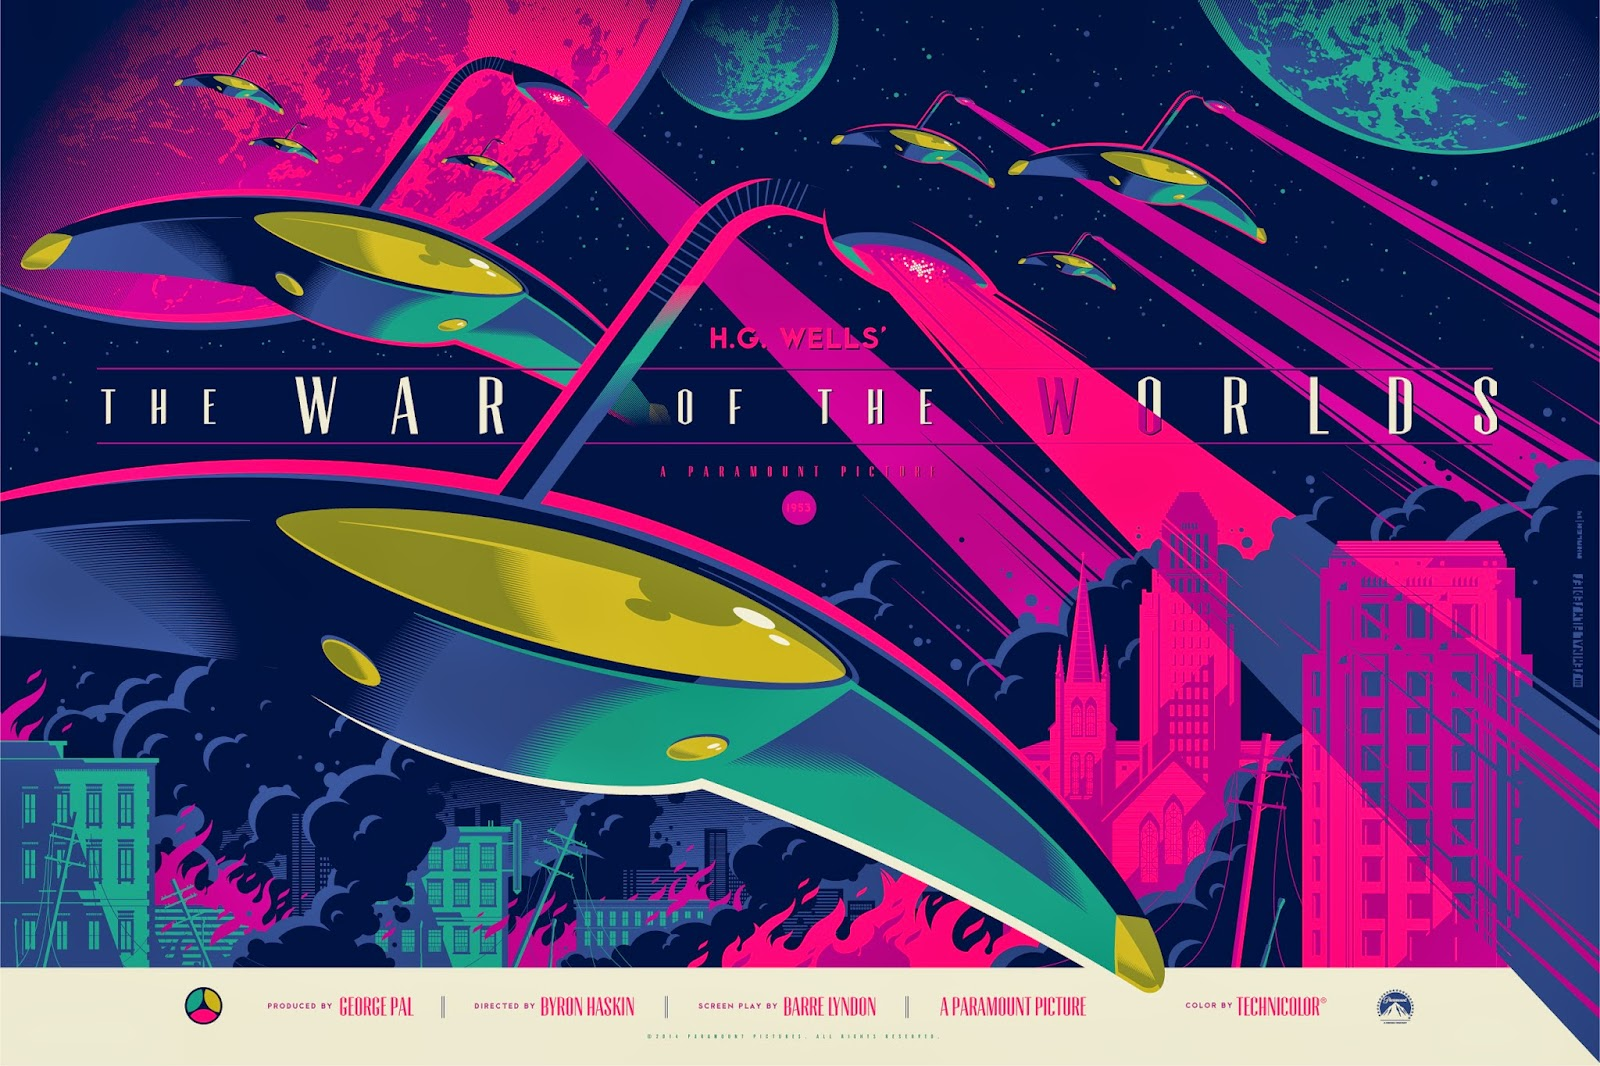 The War of the Worlds Variant Screen Print by Tom Whalen